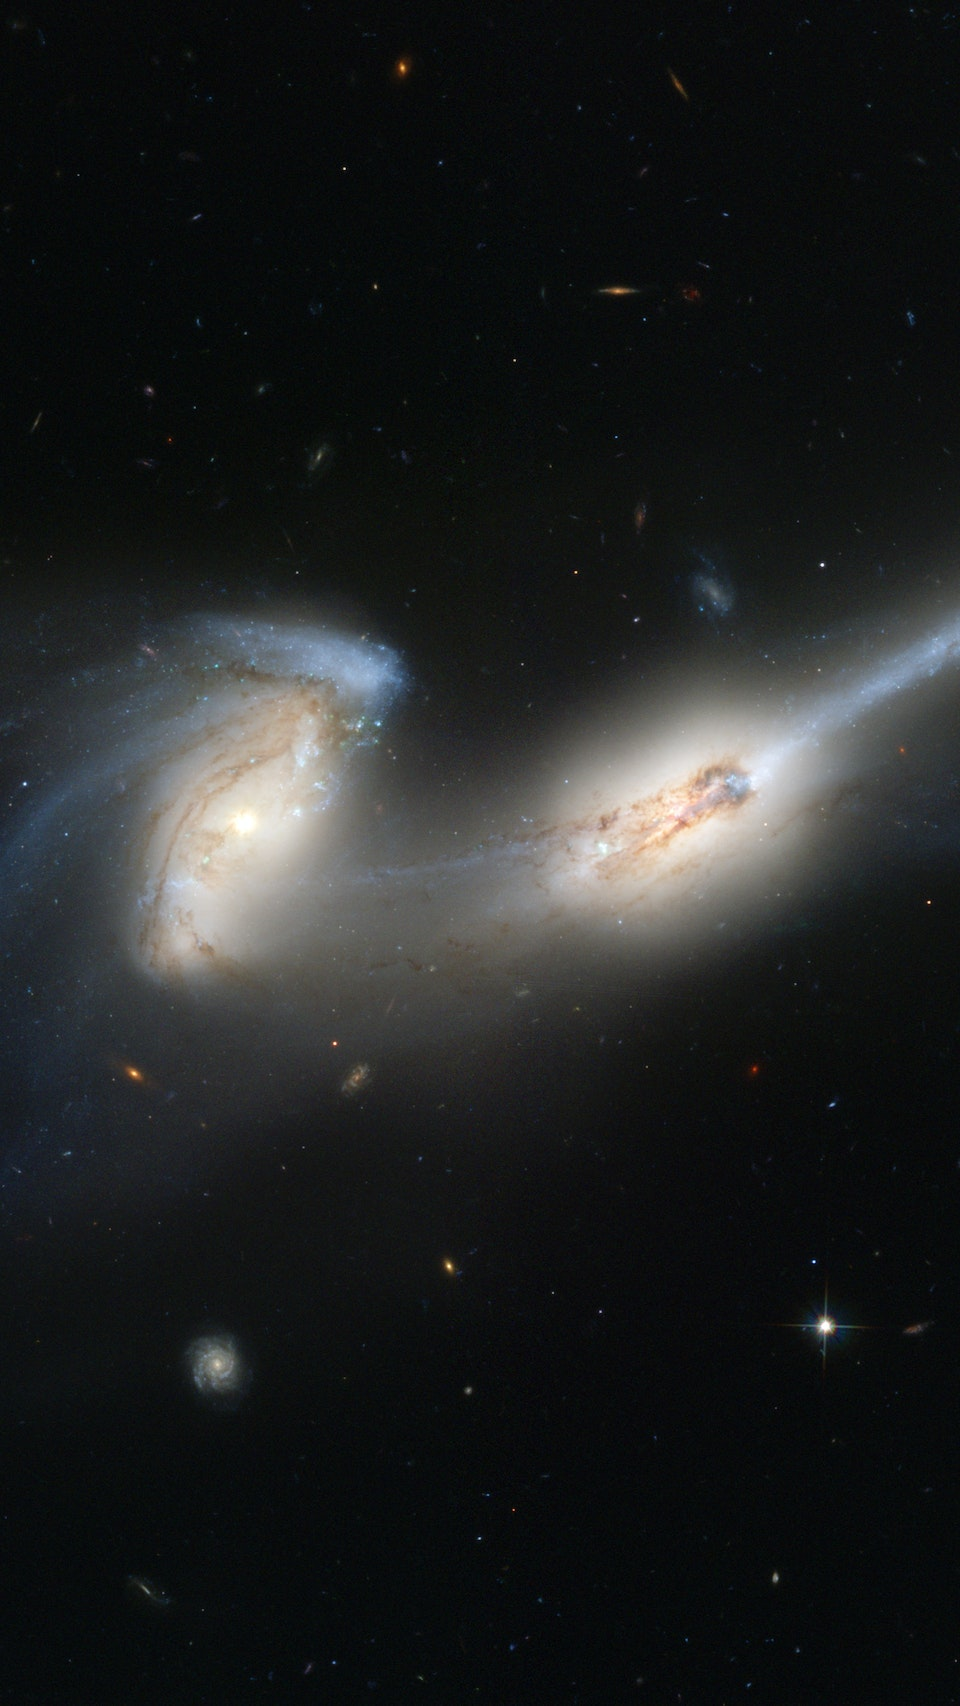 hubble telescope pictures of galaxies - HD1920×1200